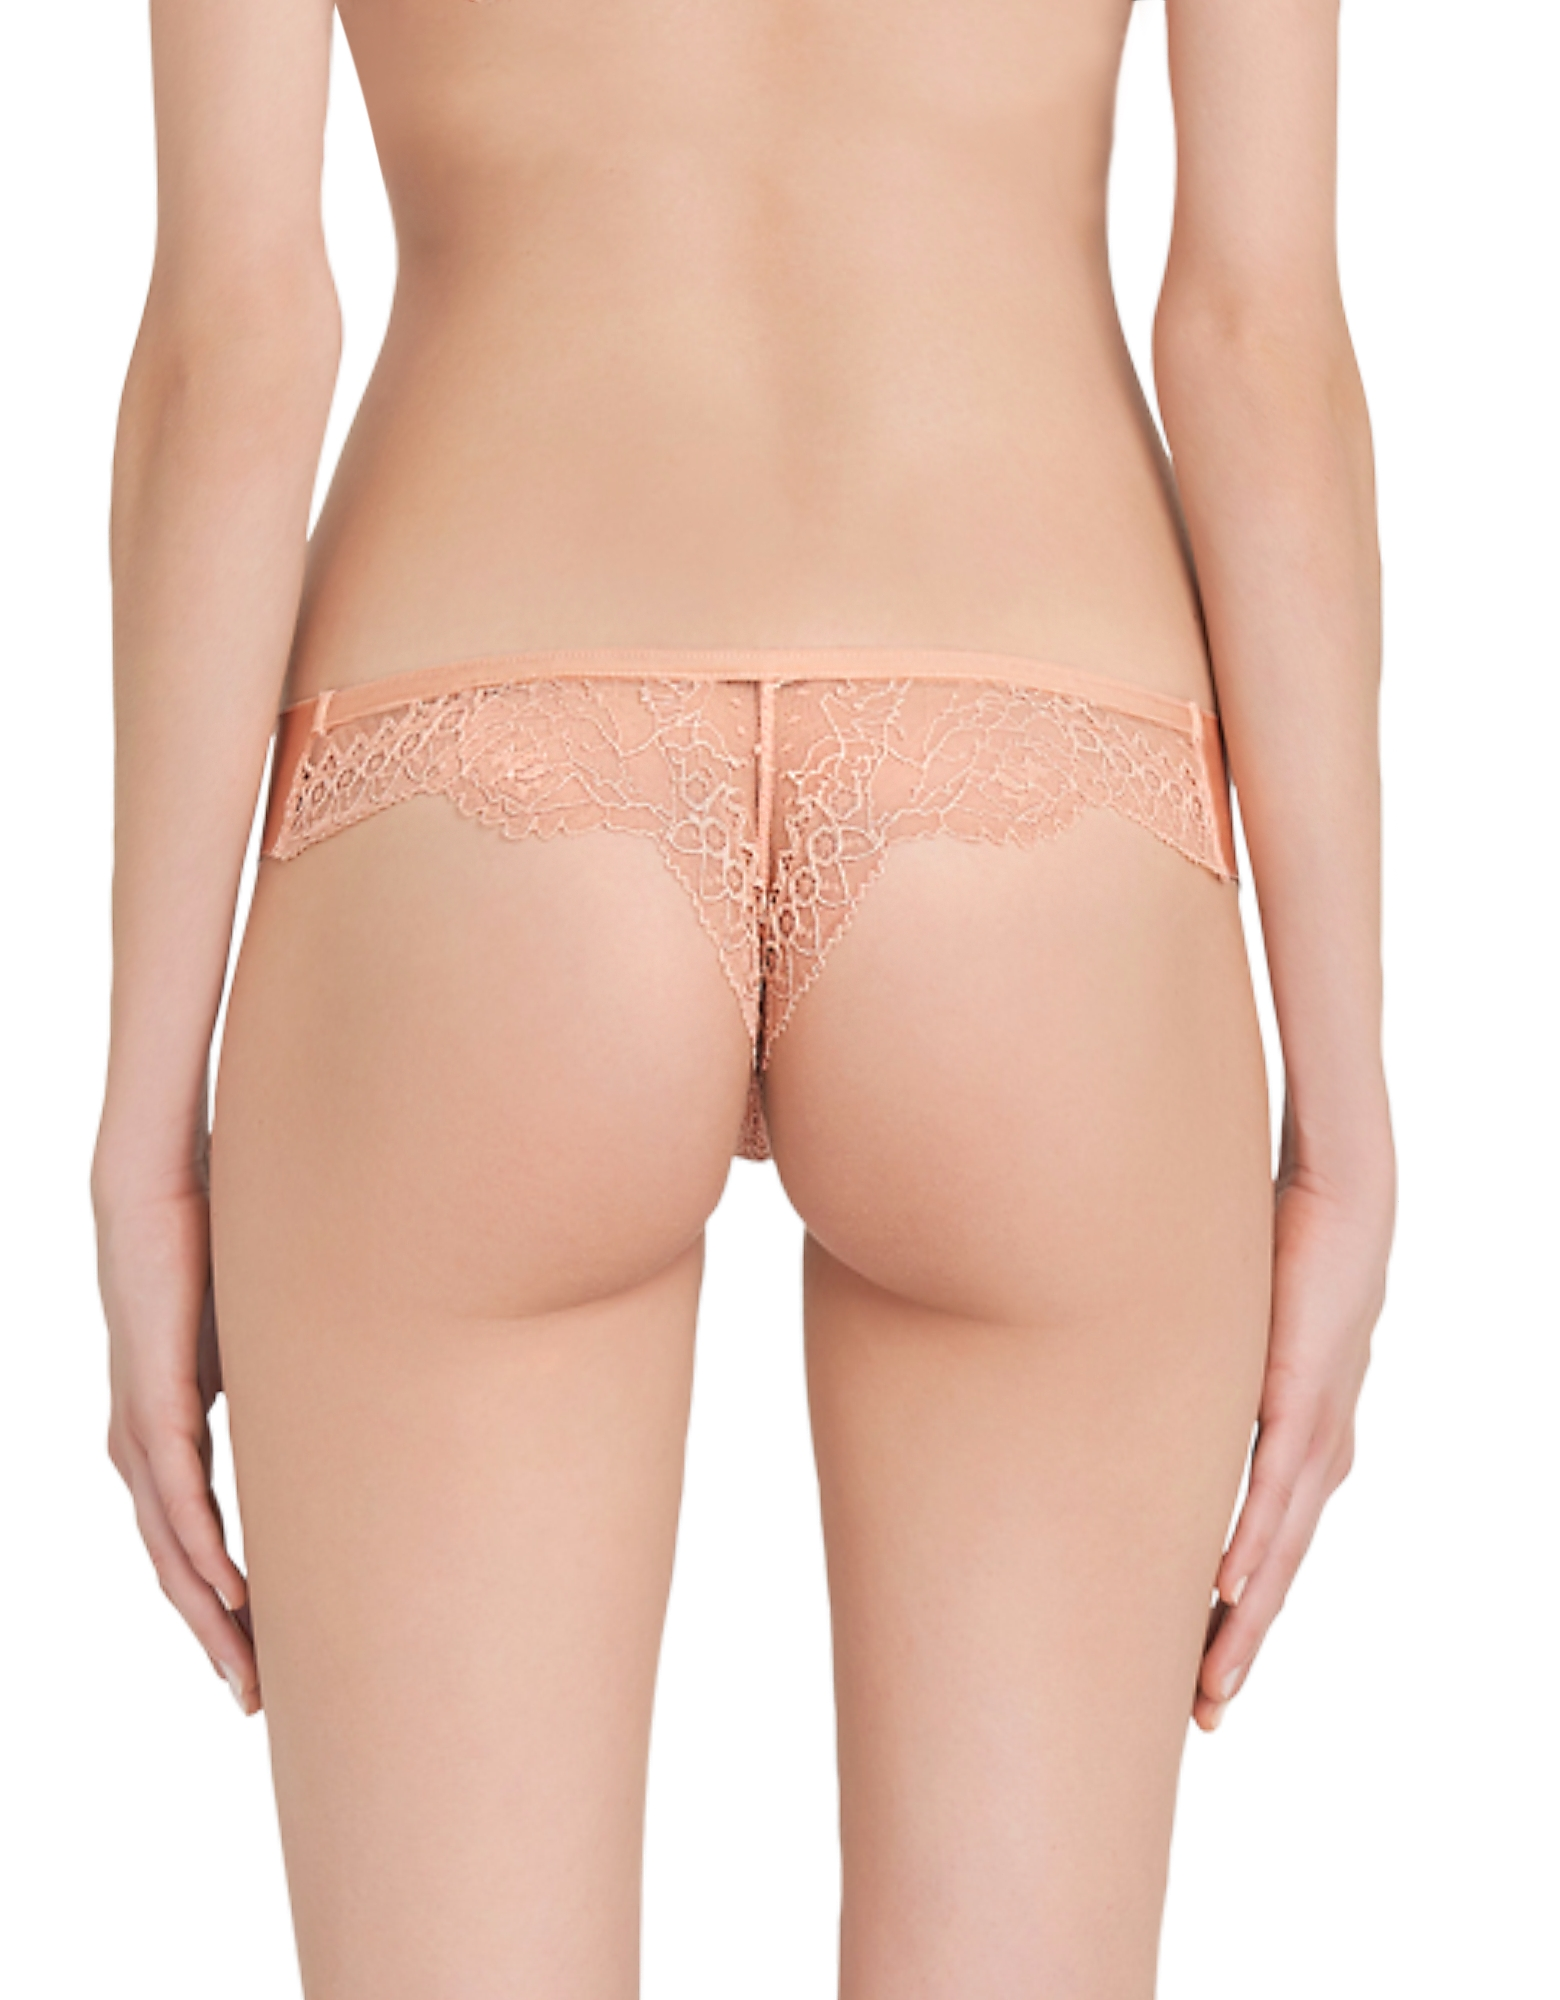 Lace Frills Nude Leavers Lace and Neoprene Low-rise Thong от Forzieri.com INT